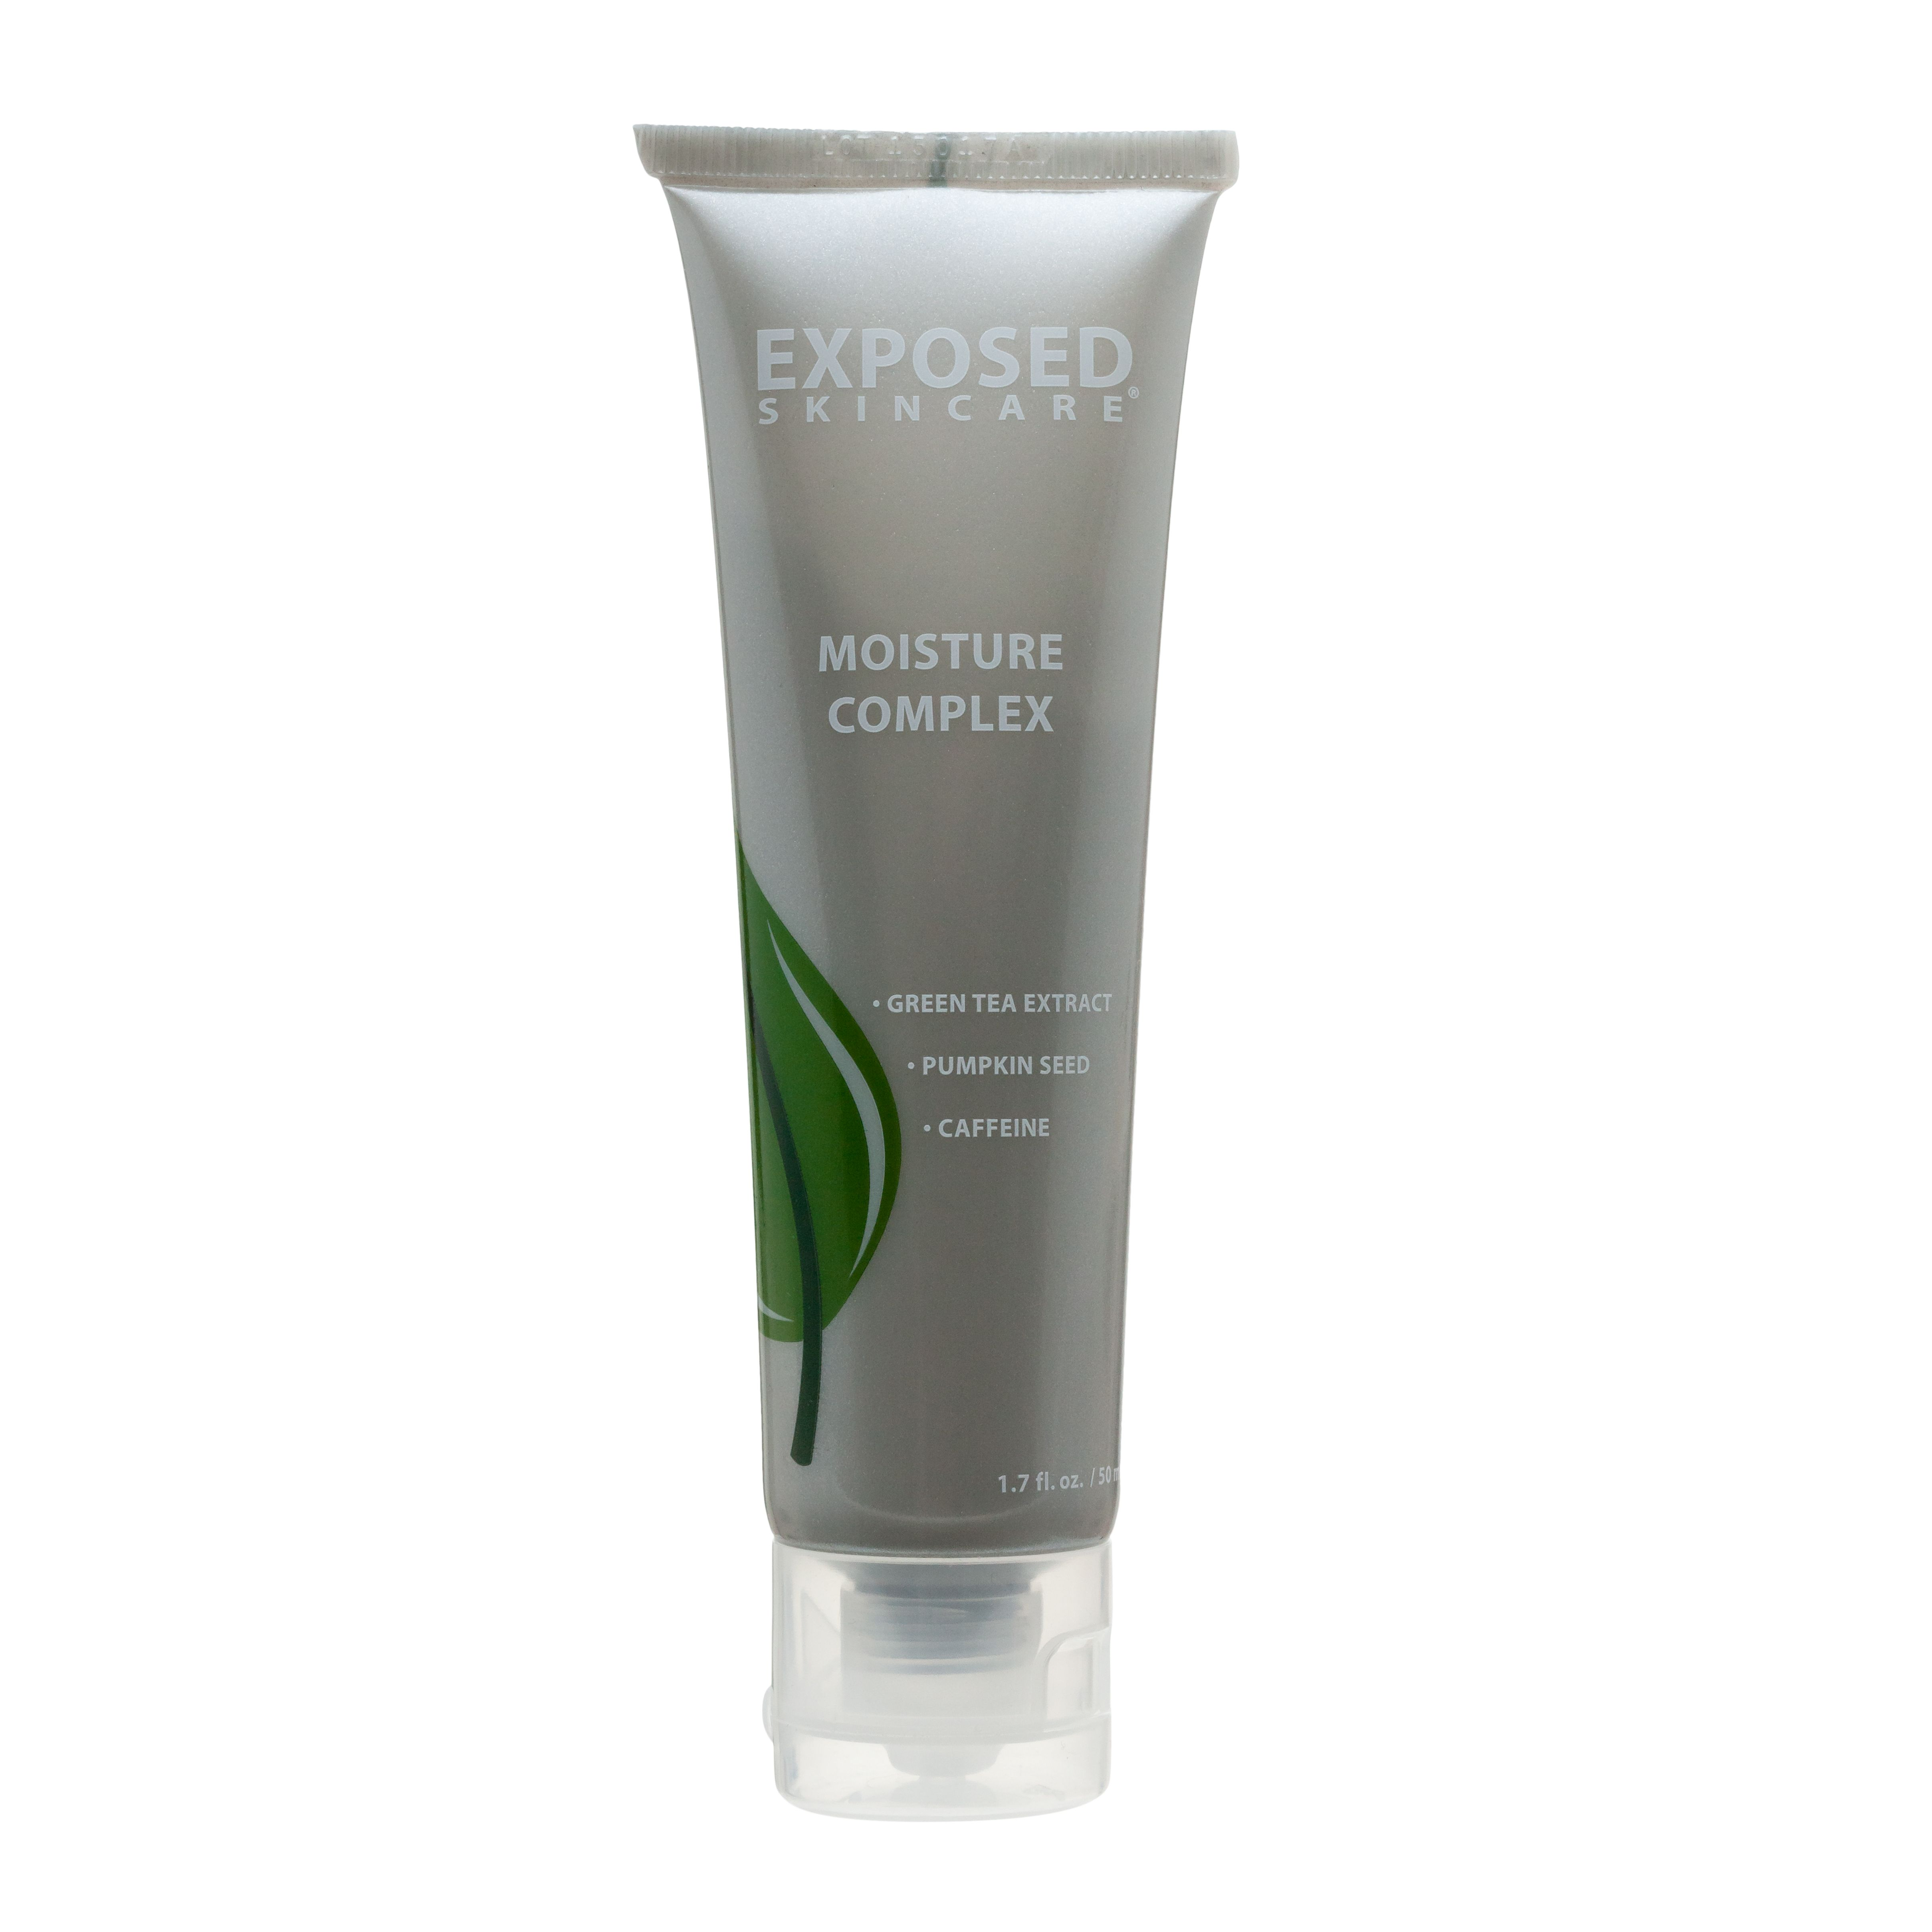 The Exposed Moisture Complex Is An Oil Free Gel That Locks In Moisture And Rebalances Your Skin Natural Extracts Exposed Skin Care Skin Care Serious Skin Care